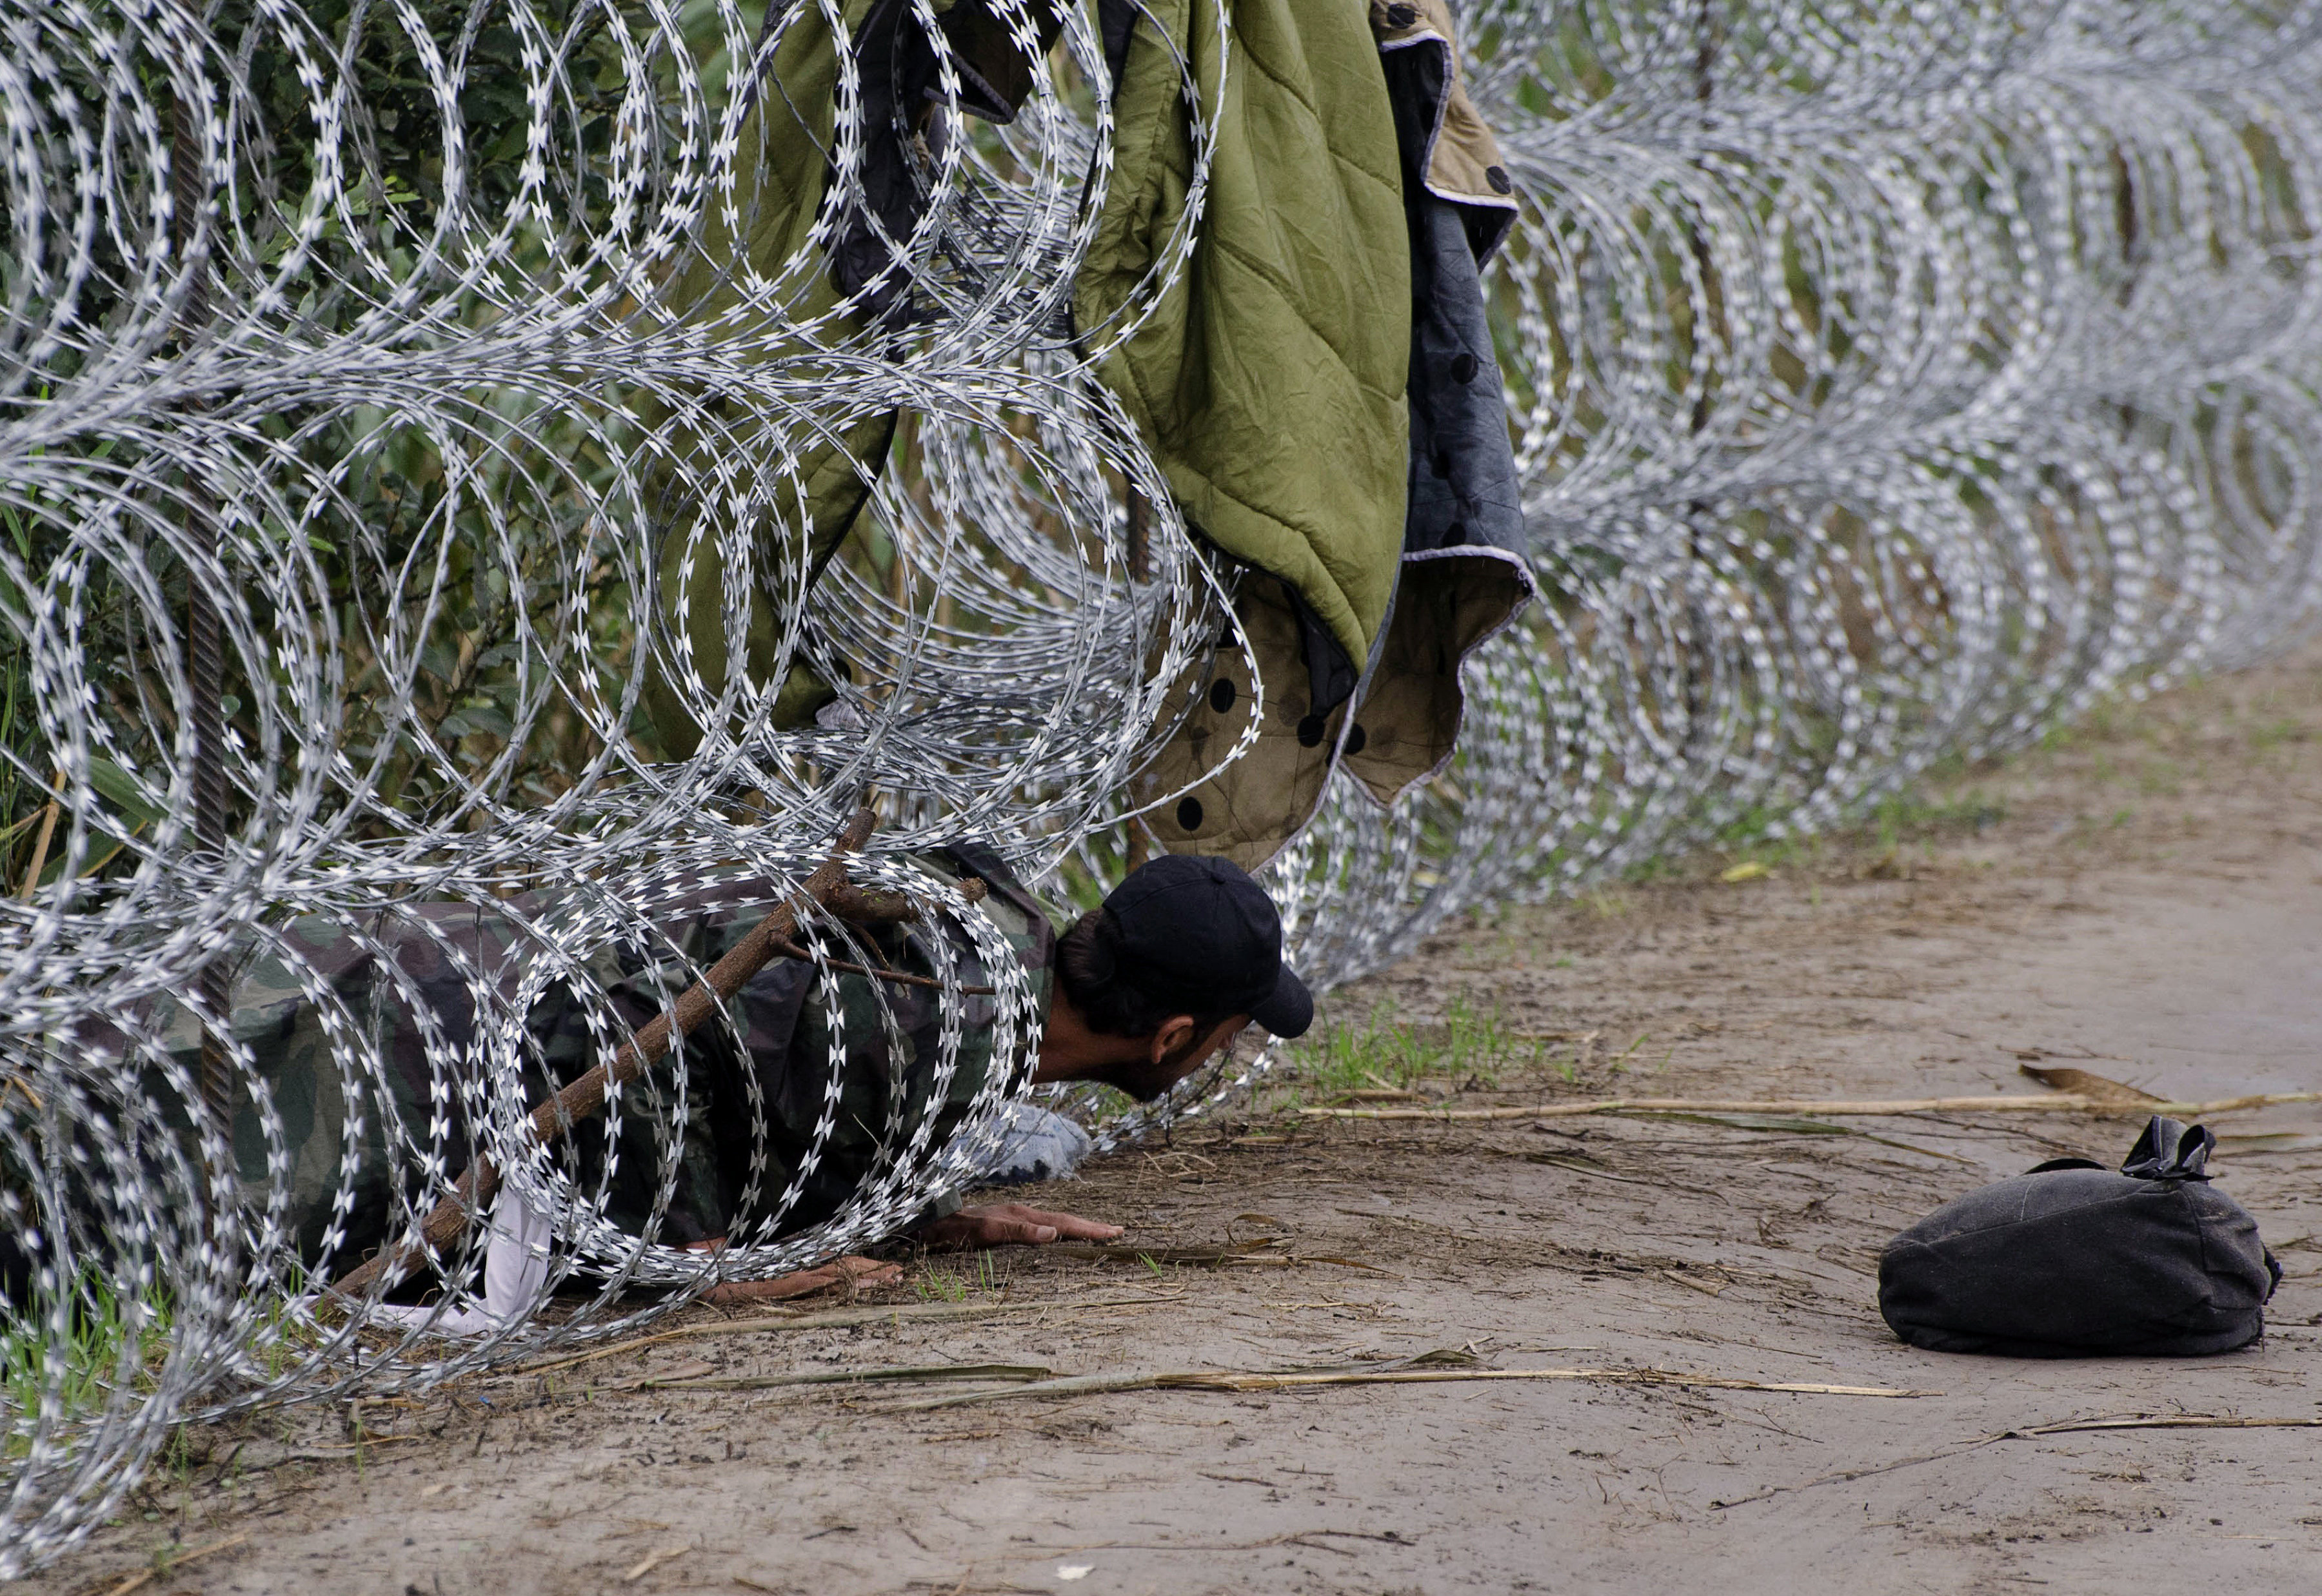 A migrant man creeps under the metal fence near the village of Roszke, at the Hungarian-Serbian border on August 26, 2015